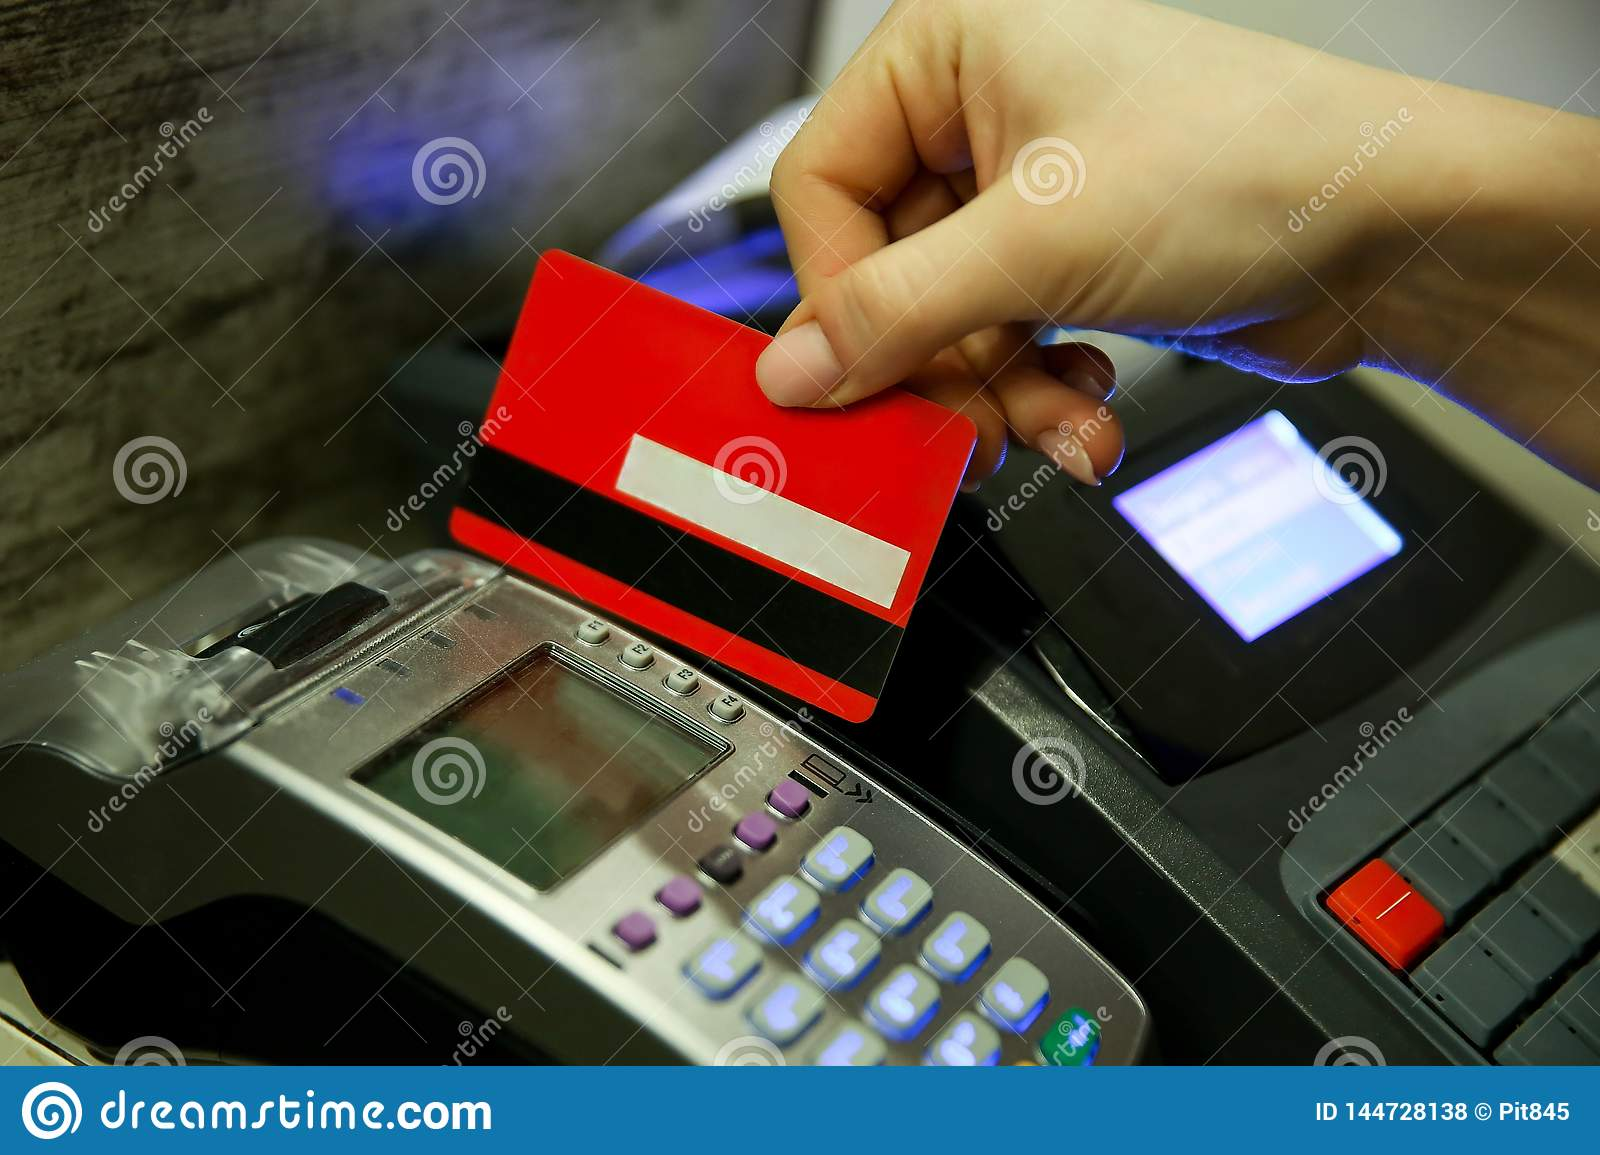 The woman`s hand pays for the purchase with a card with a magnetic stripe.